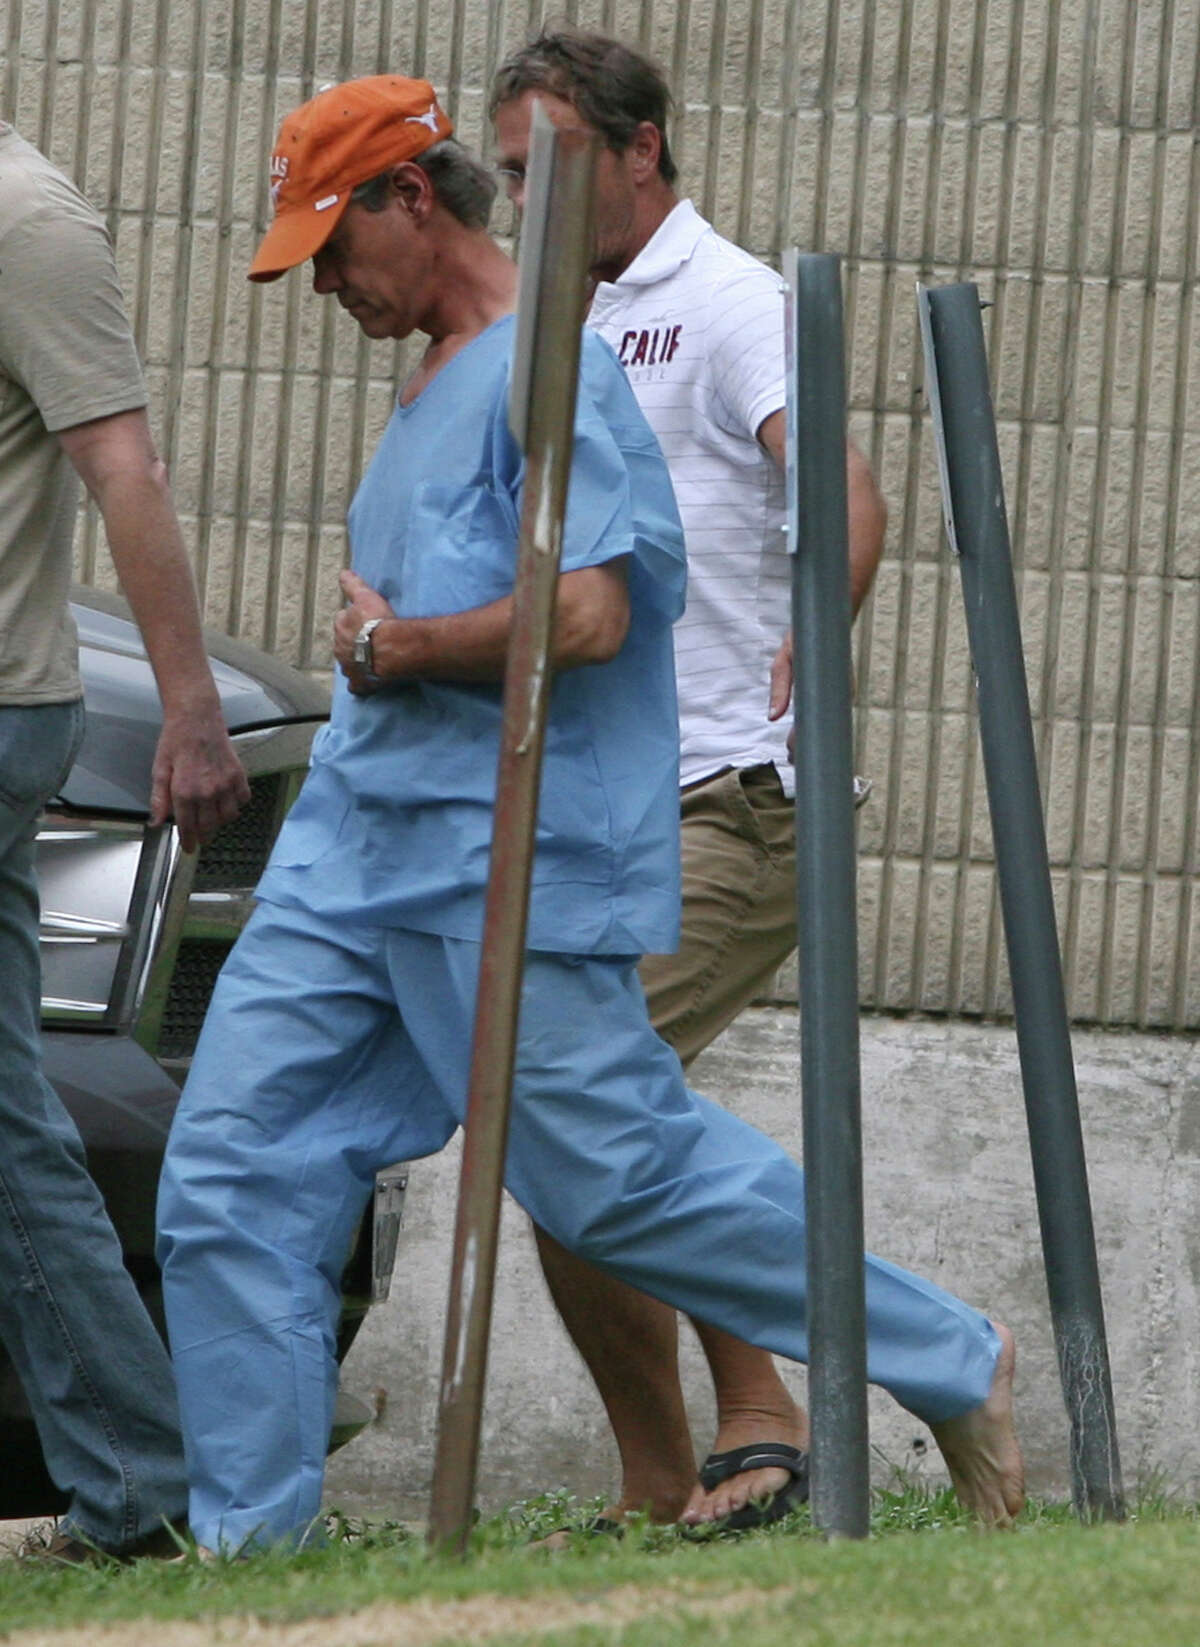 Randy Travis, center, wearing cap, exits the Grayson County jail with two unknown persons Wednesday Aug. 8, 2012, in Sherman, Texas, after being arraigned on charges of driving while intoxicated and retaliation. (AP Photo/The Herald Democrat, Chris Jennings) TV OUT; MAGS OUT; TV AND MAGAZINE CALL FOR RATES TERMS;MANDATORY CREDIT